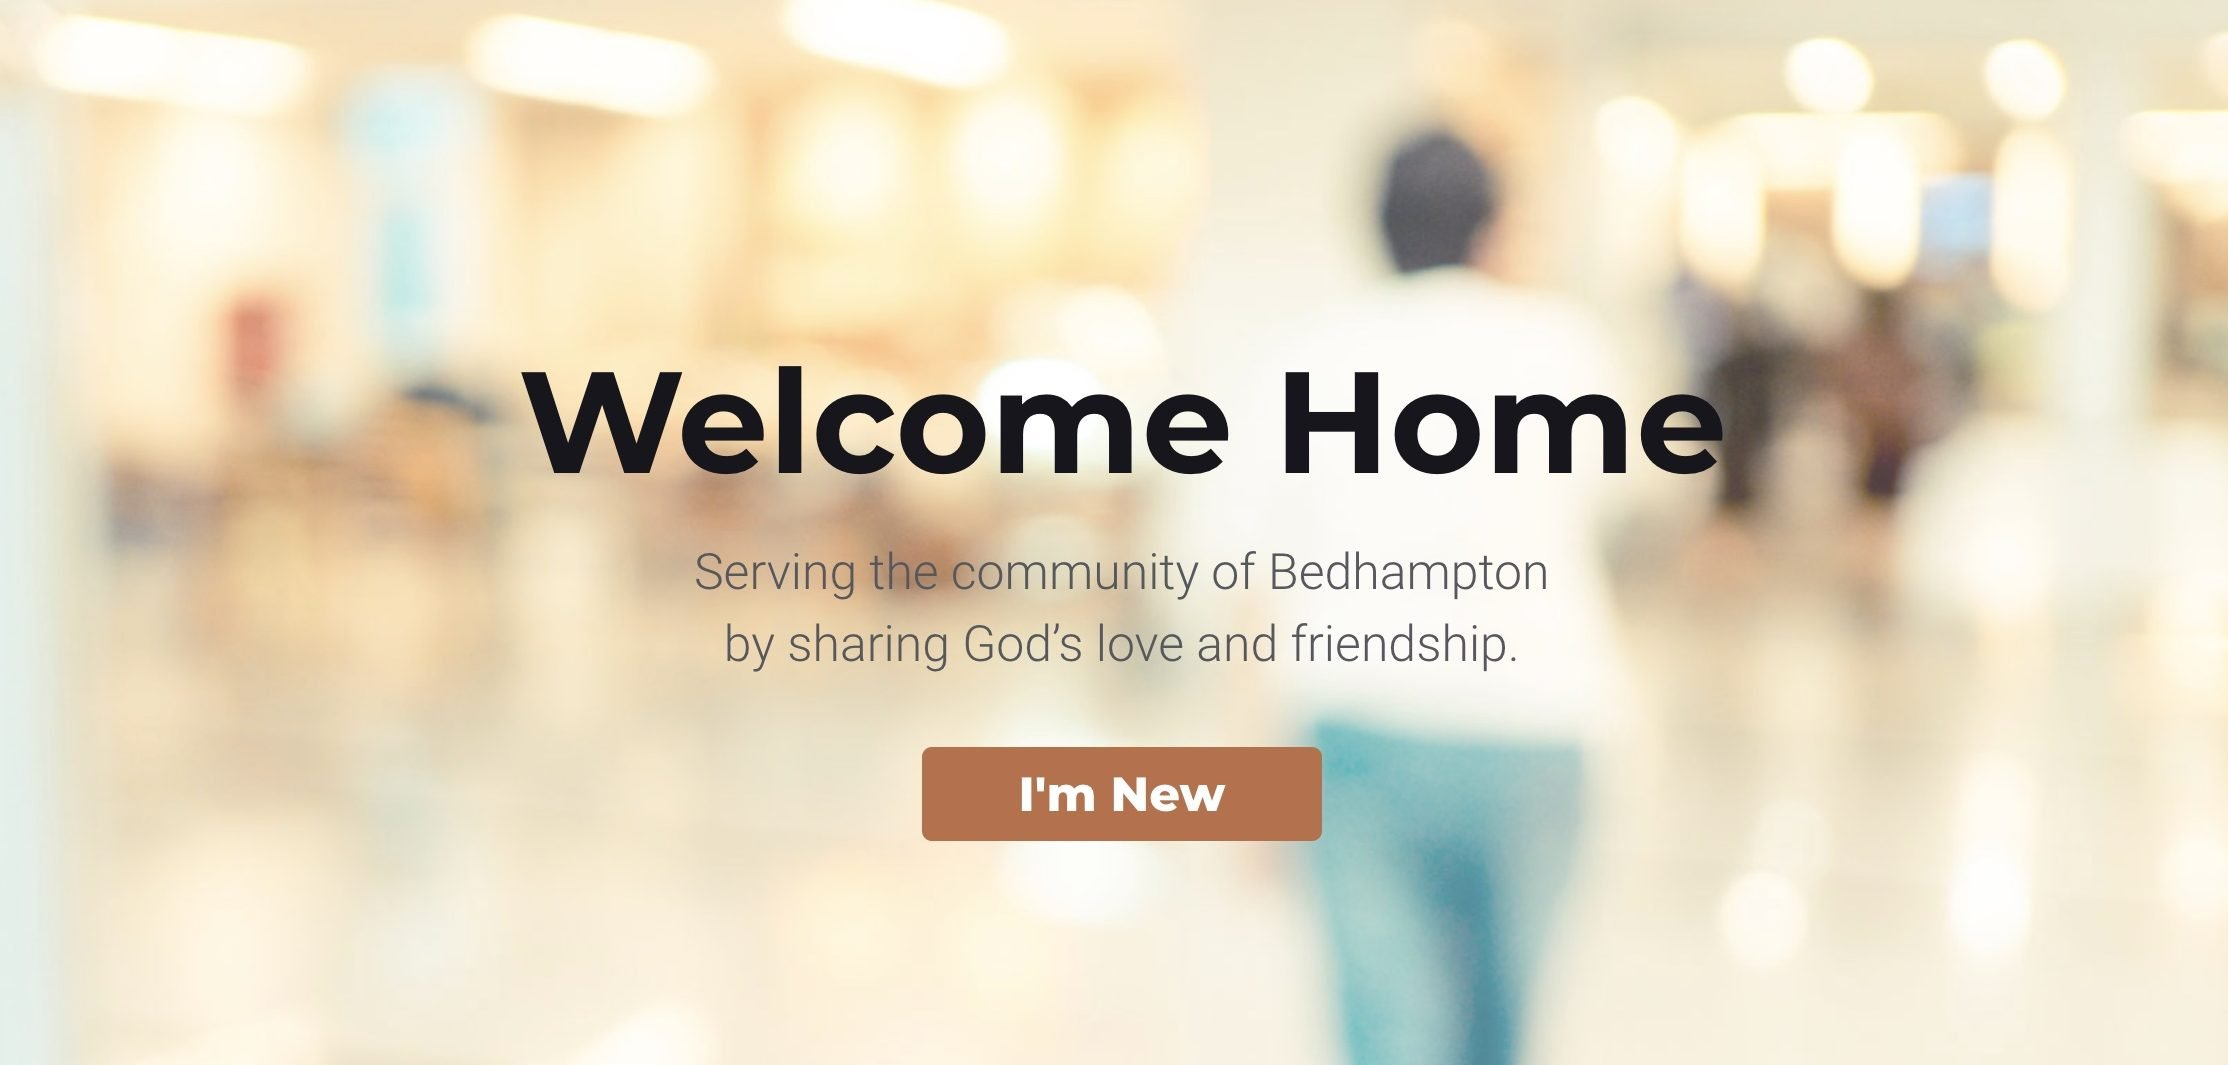 We want to welcome you here as we serve the community of Bedhampton, Havant, Hampshire, by sharing God's love and friendship.